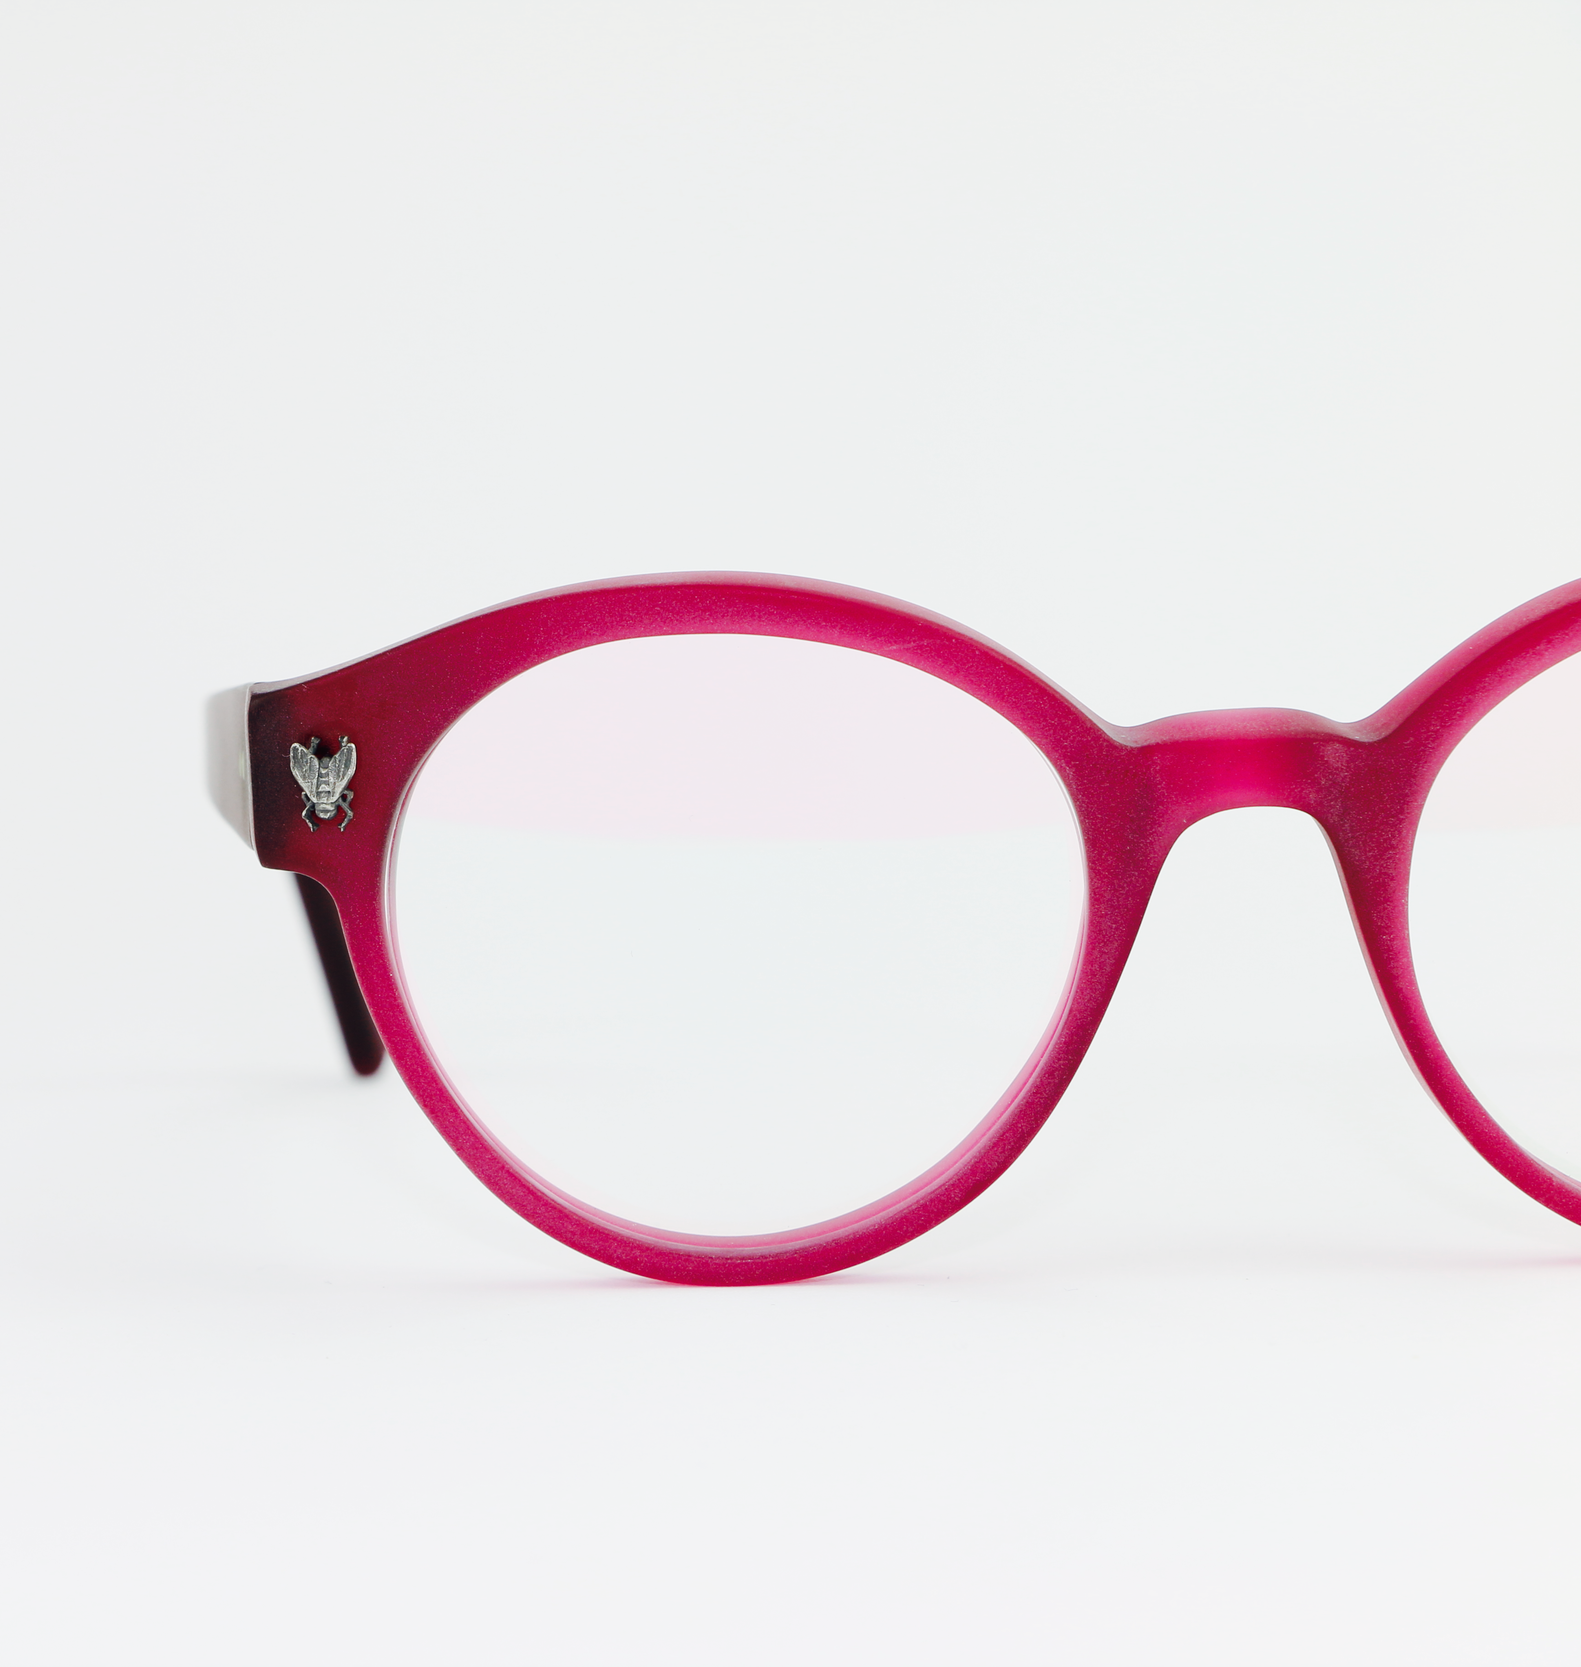 WALLACE - THE OPTICAL. COAs part of the Vivarium collection, Wallace is a comfortable statement of color. Handcrafted using a unique grade of Italian acrylic gives this frame a perfect color. Amazing as sunglasses.image: The Optical. Co